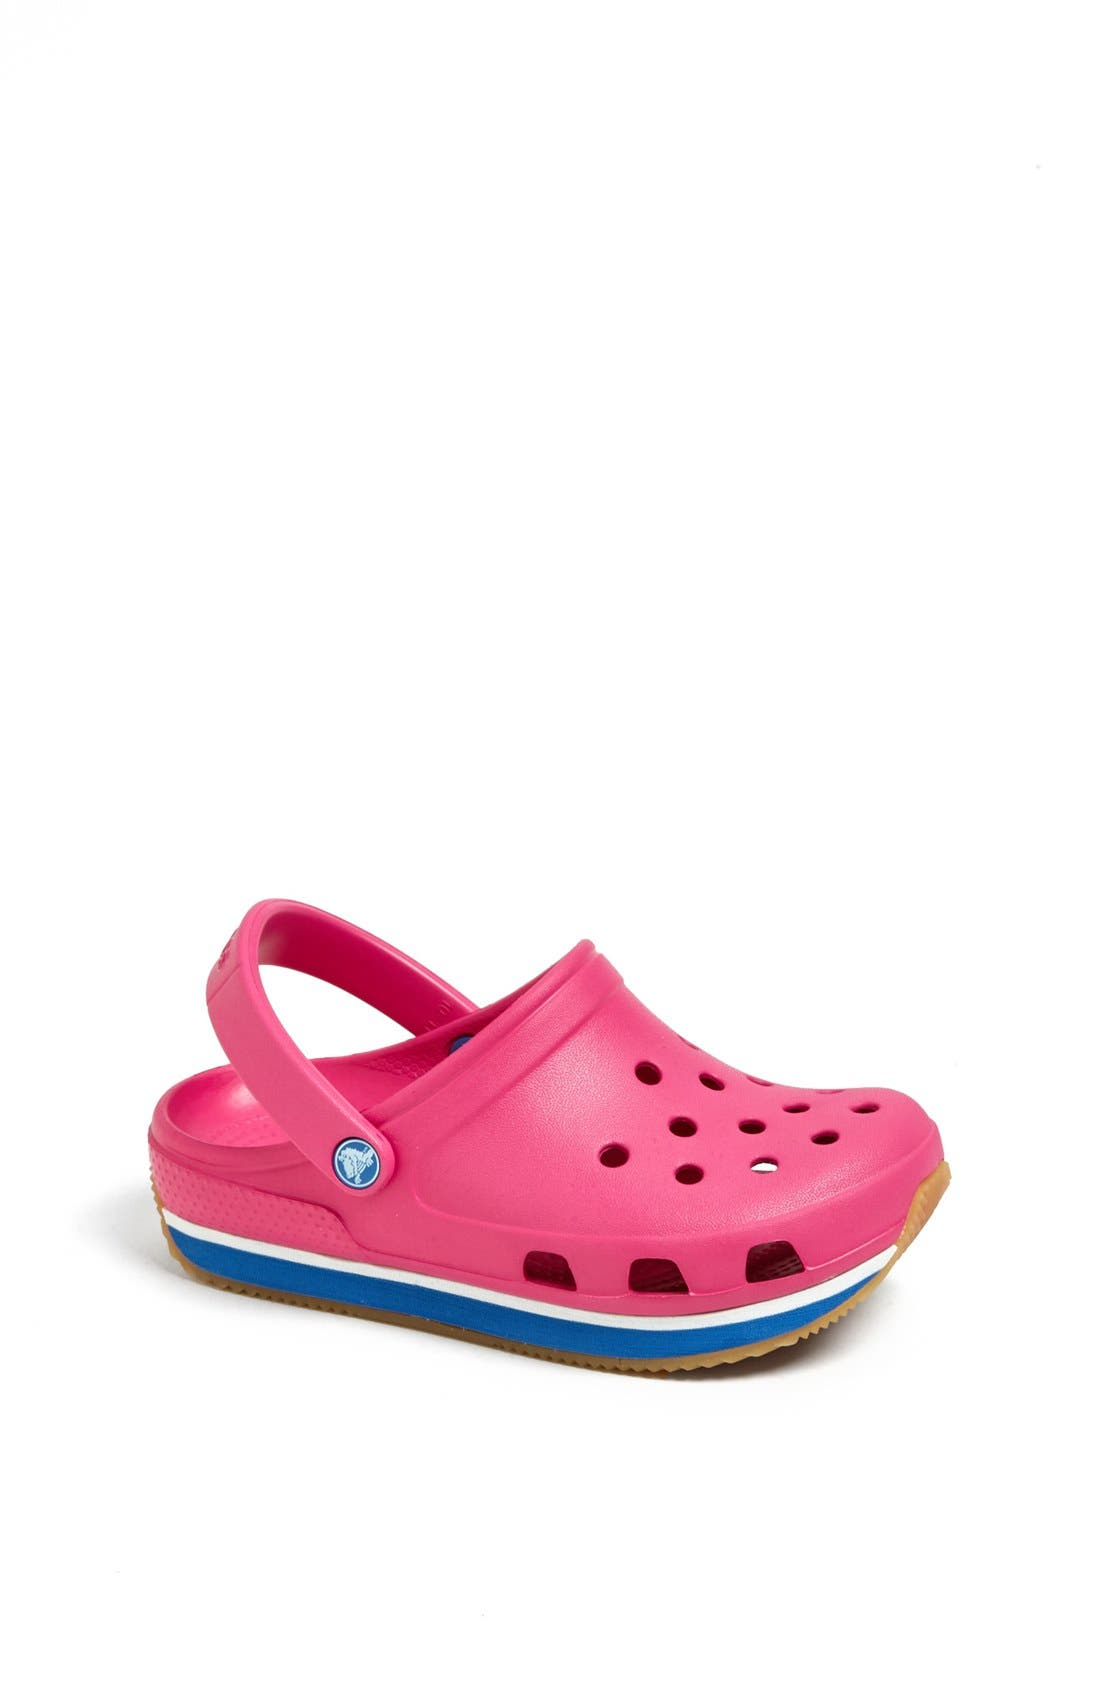 Alternate Image 1 Selected - CROCS™ 'Retro Clog' Slip-On (Walker, Toddler & Little Kid)